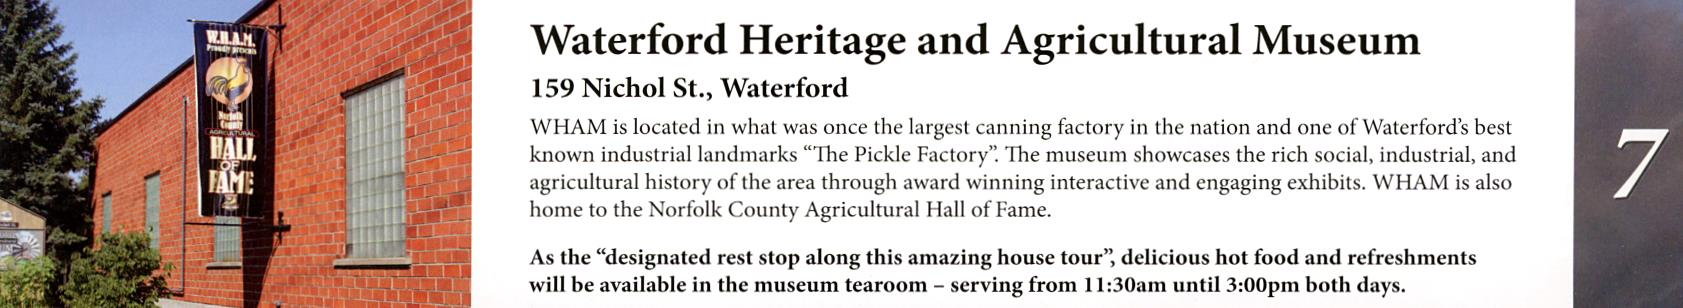 Waterford Heritage and Agricultural Musuem